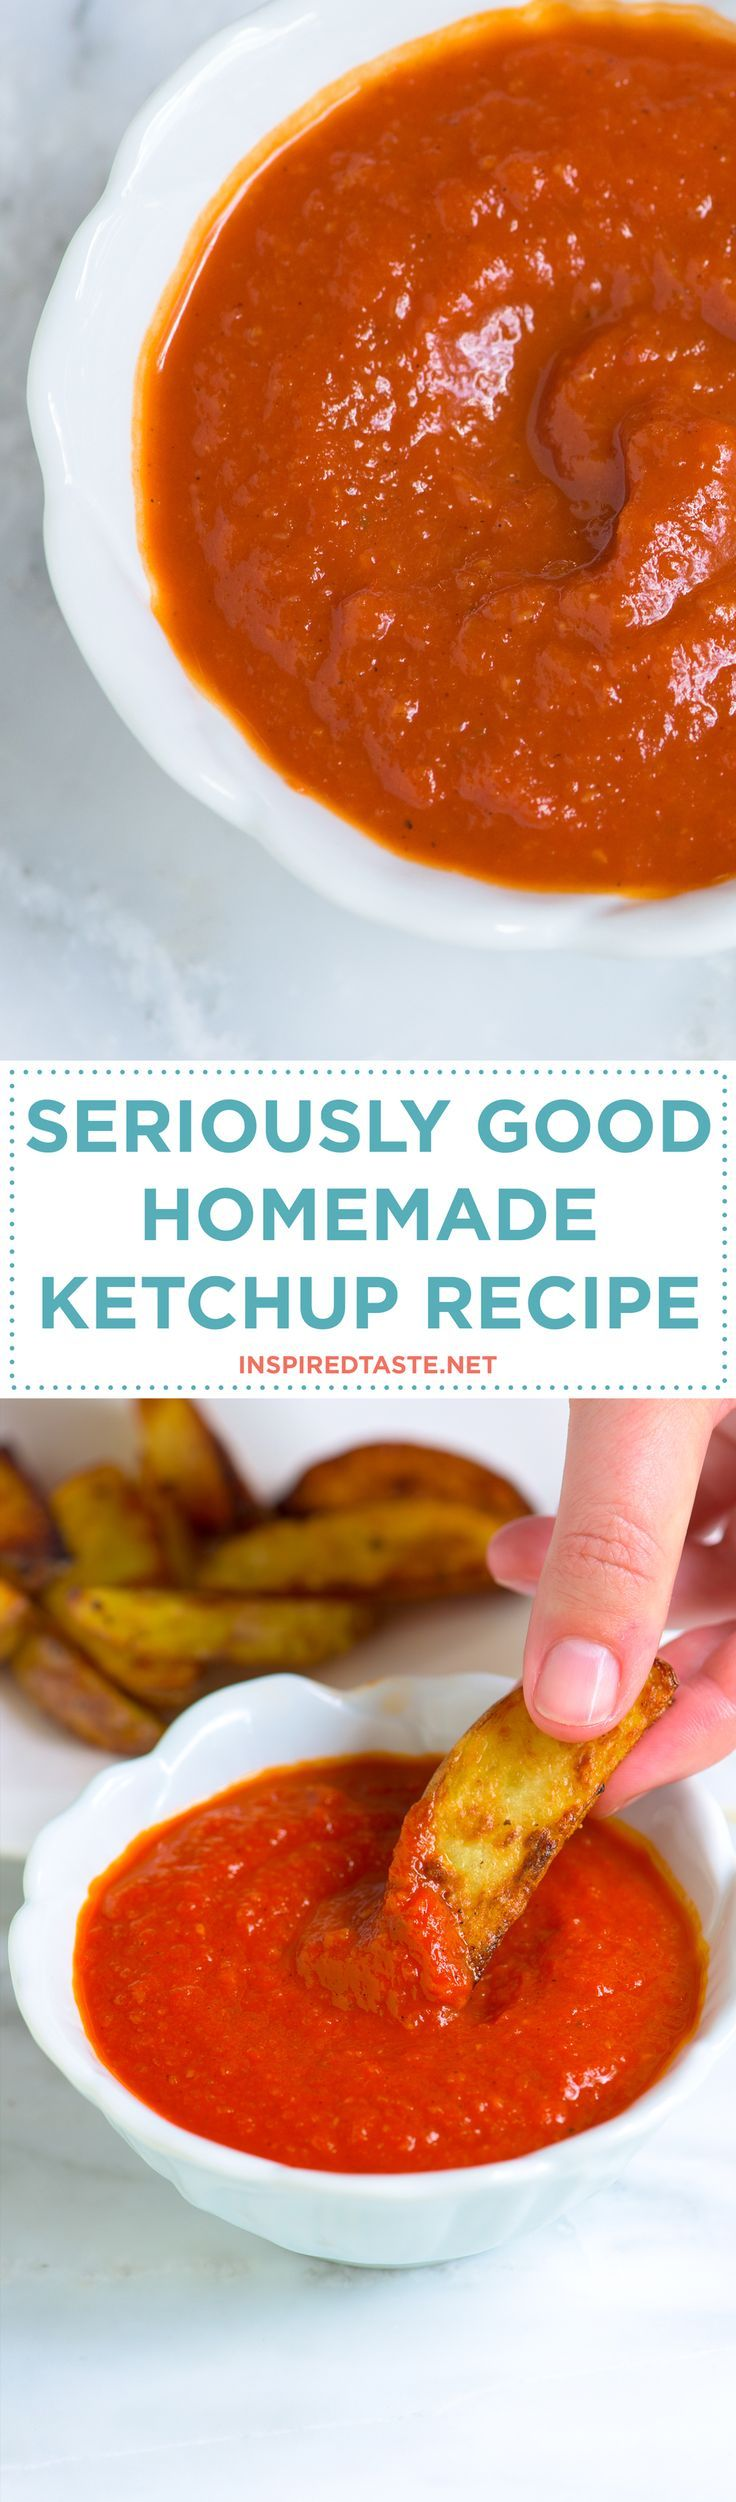 Homemade ketchup is a must make. It's so simple, flavorful and easy to spice up or change up based on what you love. Recipe on inspiredtaste.net   @inspiredtaste